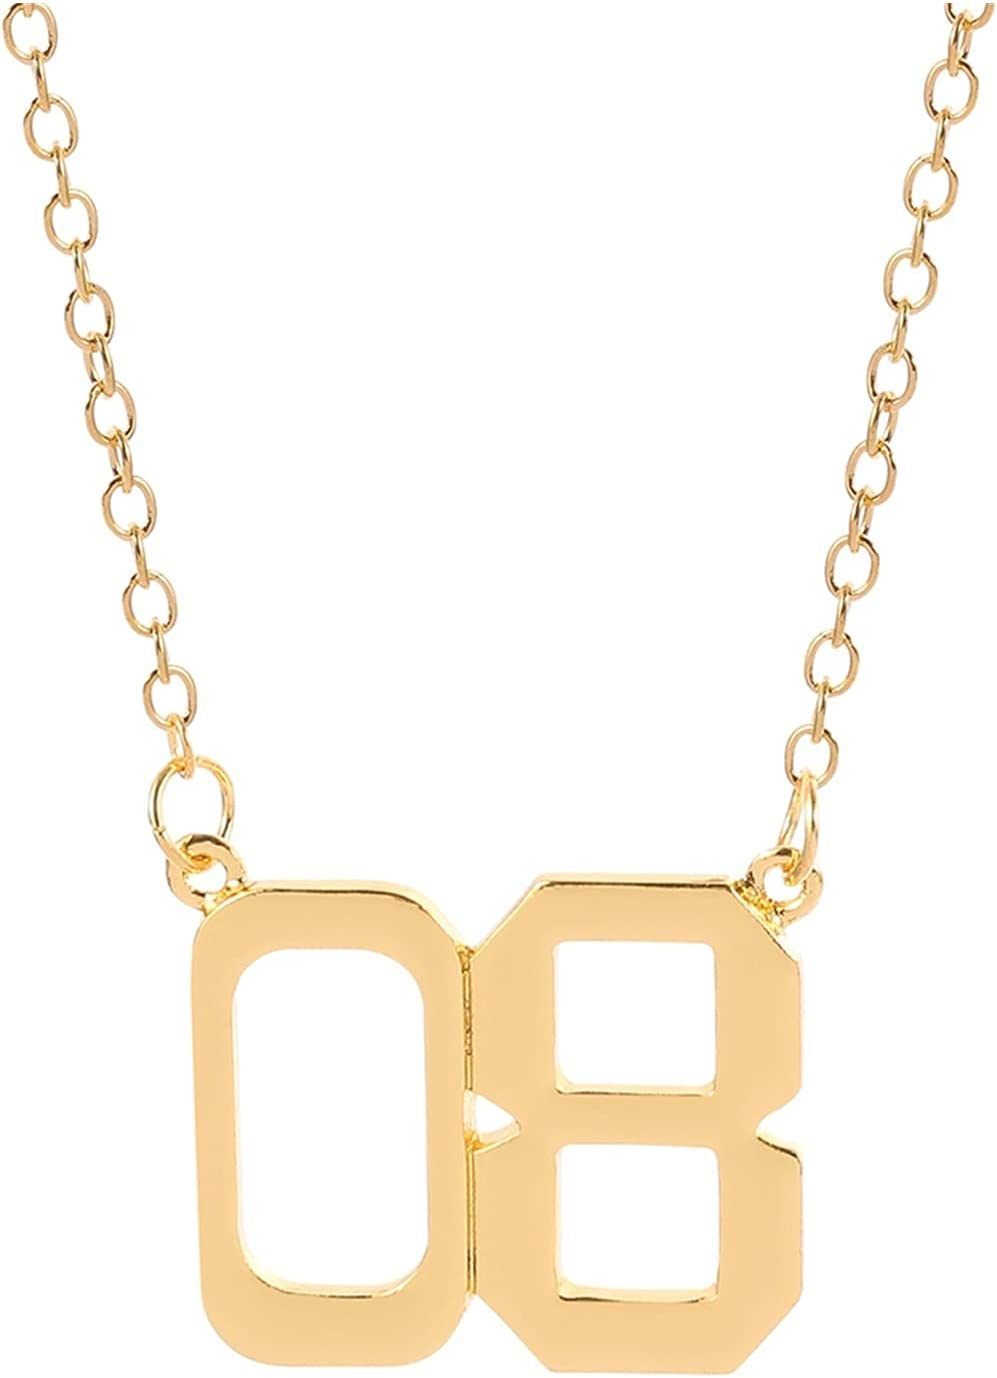 JIAQ Stranger Things Number 08 011 Necklace Gold Color for Man Women Movie Fans Necklace Charm Collar Classic Jewelry Clavicle Chain (Metal Color : XL2258)